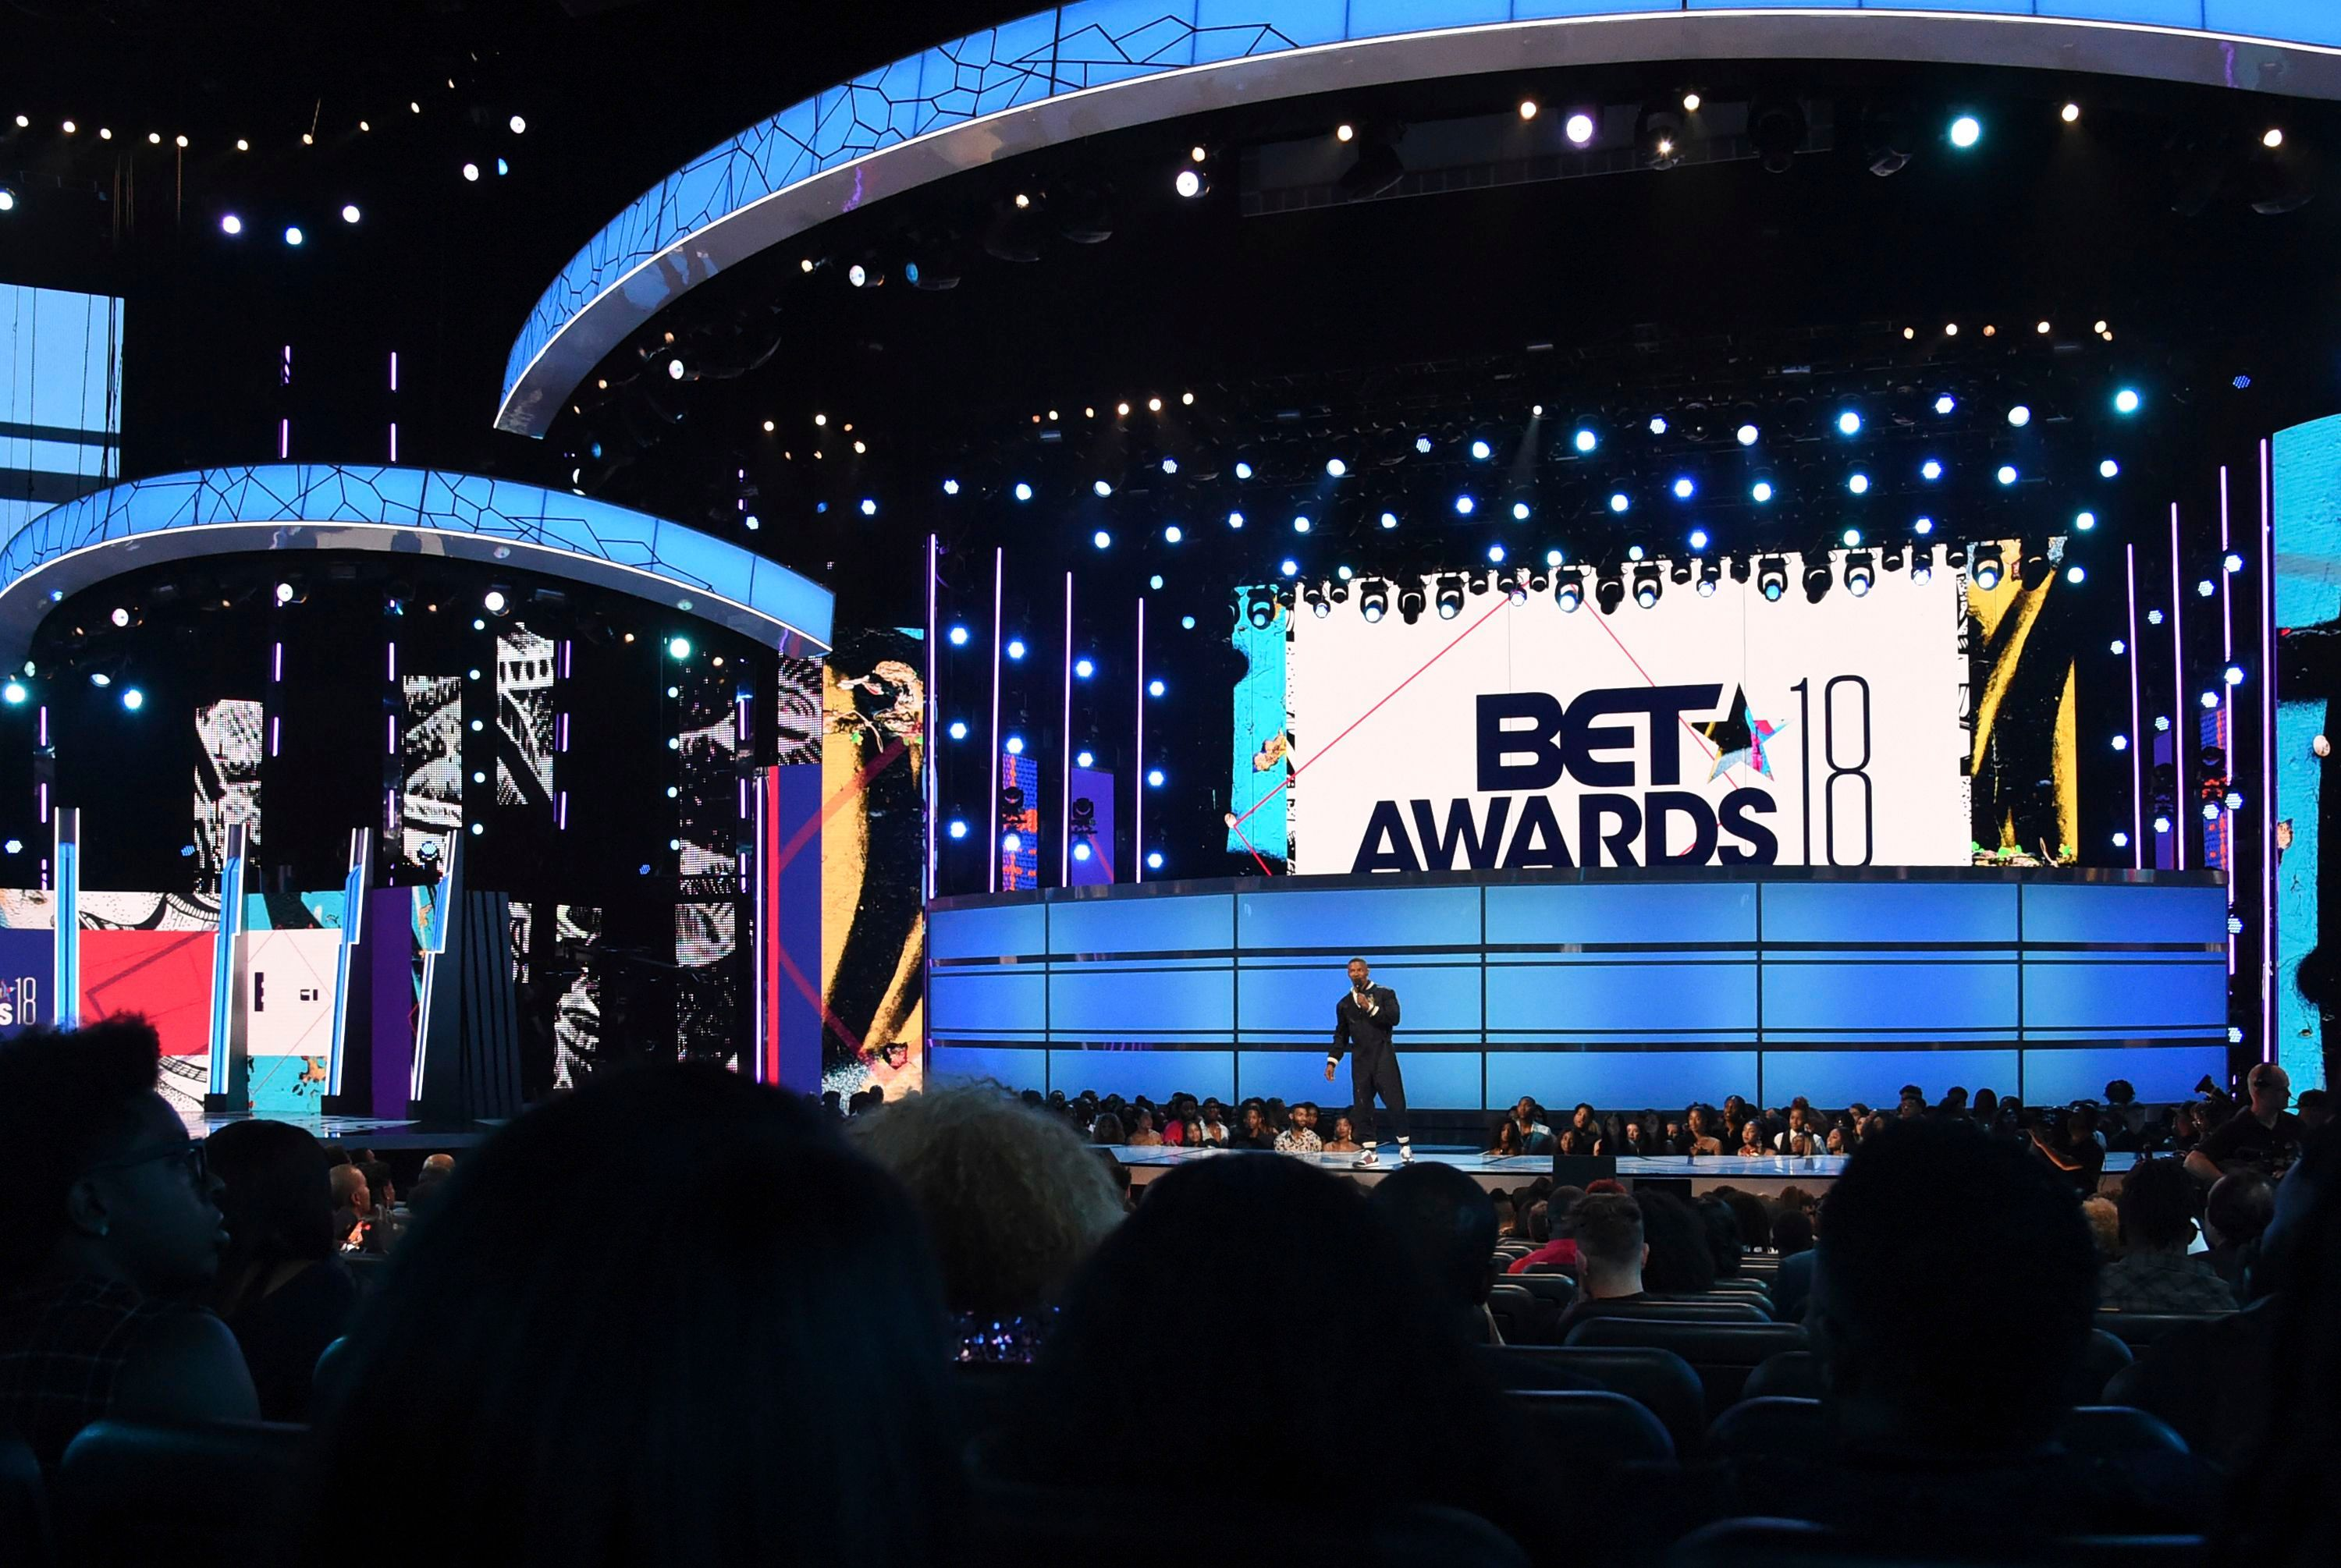 2018 BET Awards - Show, Los Angeles, USA - 24 Jun 2018